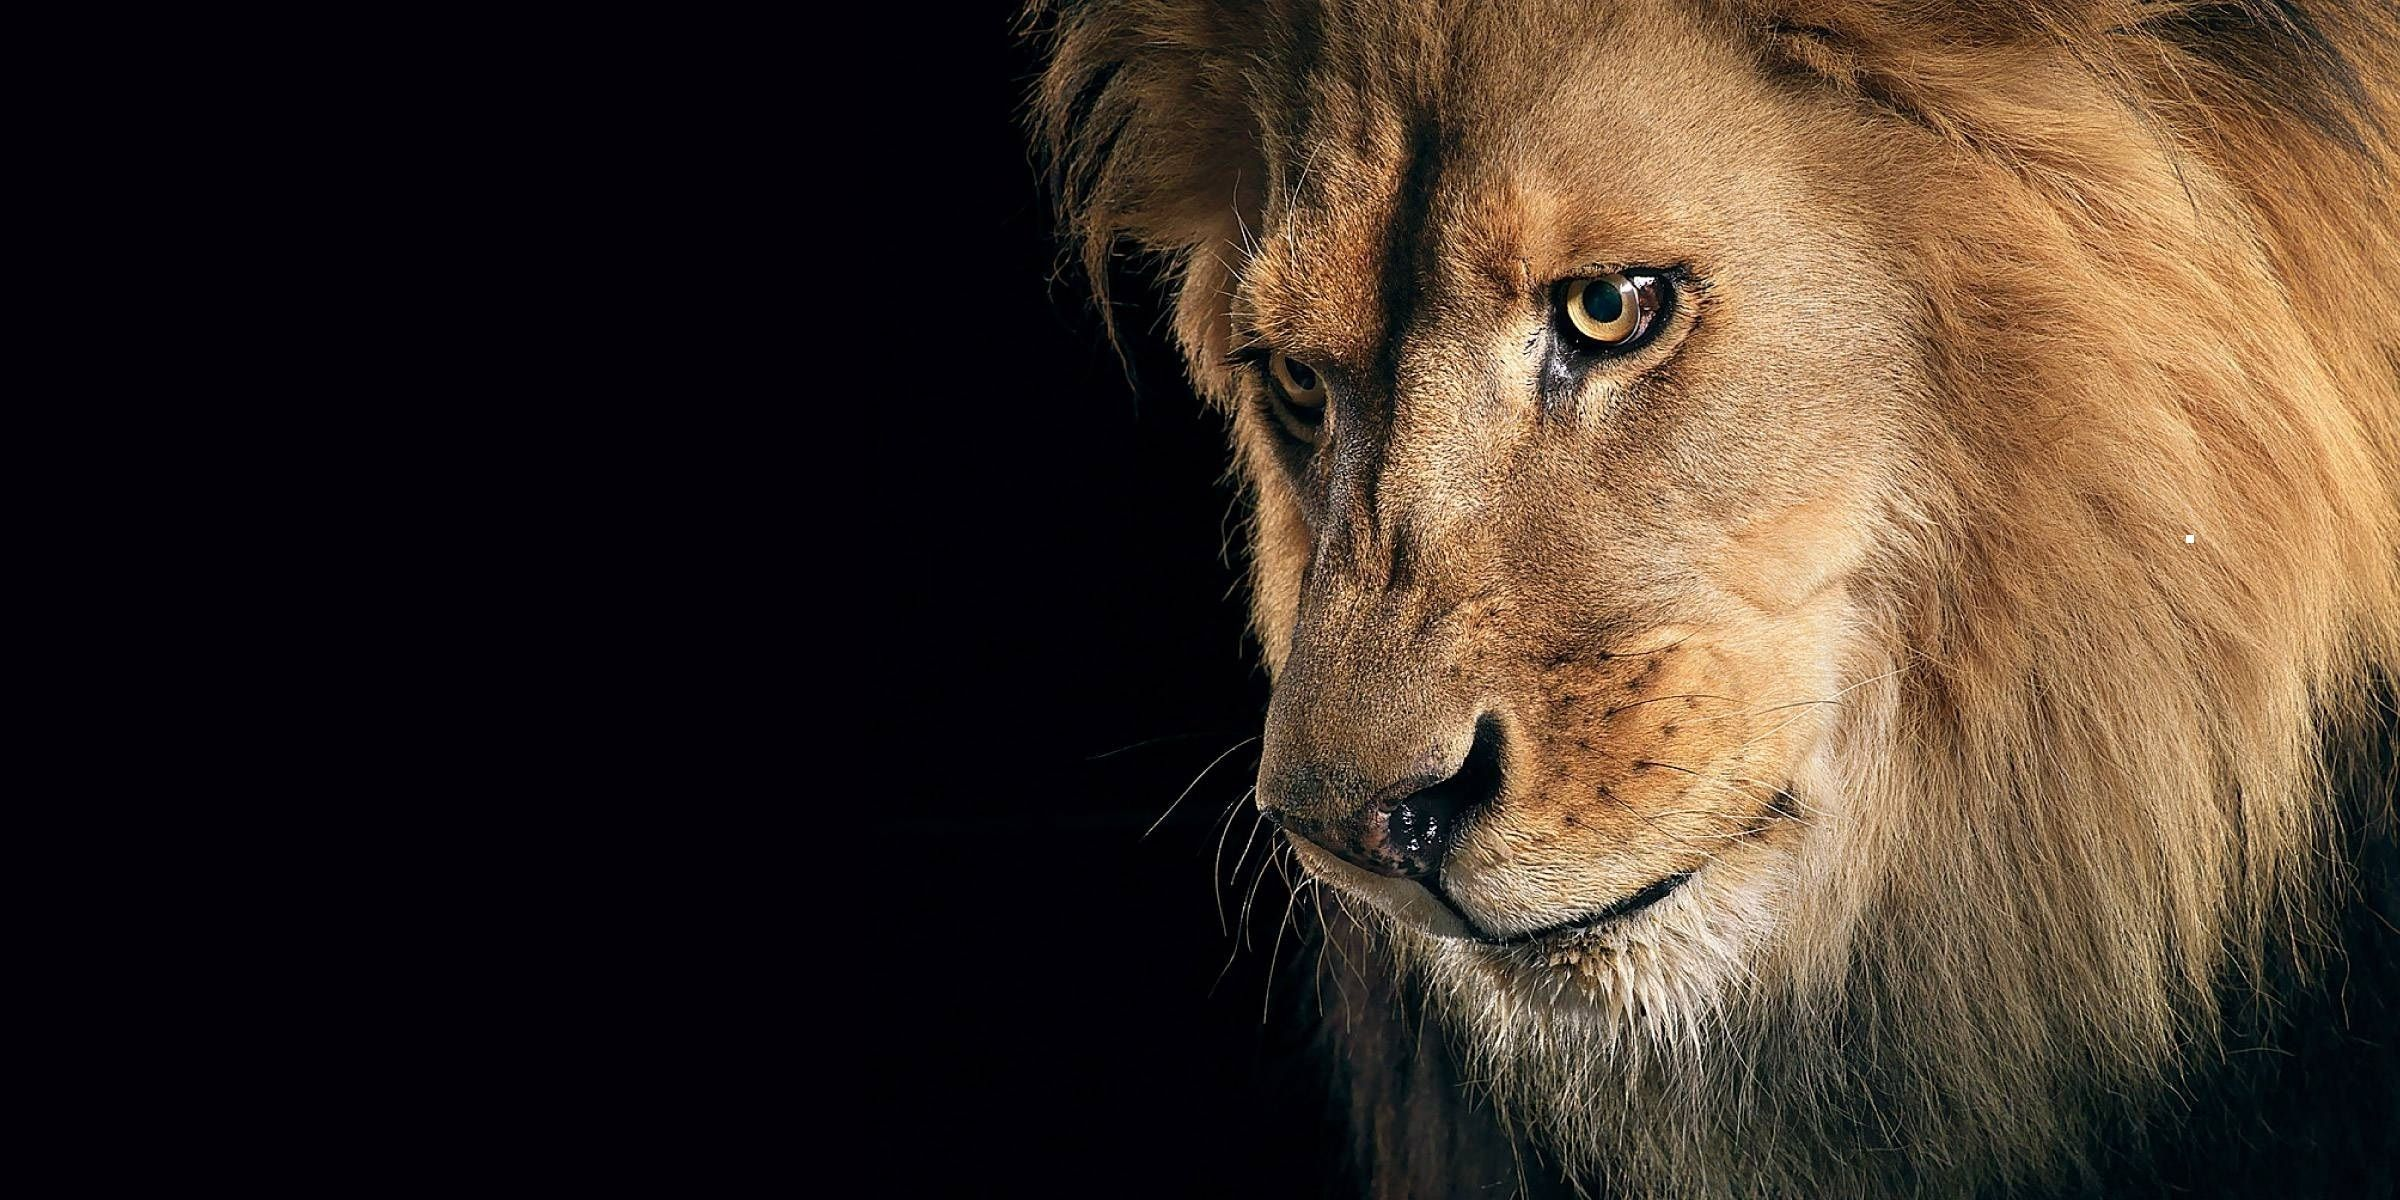 sad lion hd wallpaper hd wallpapers | leo the lion | pinterest | hd